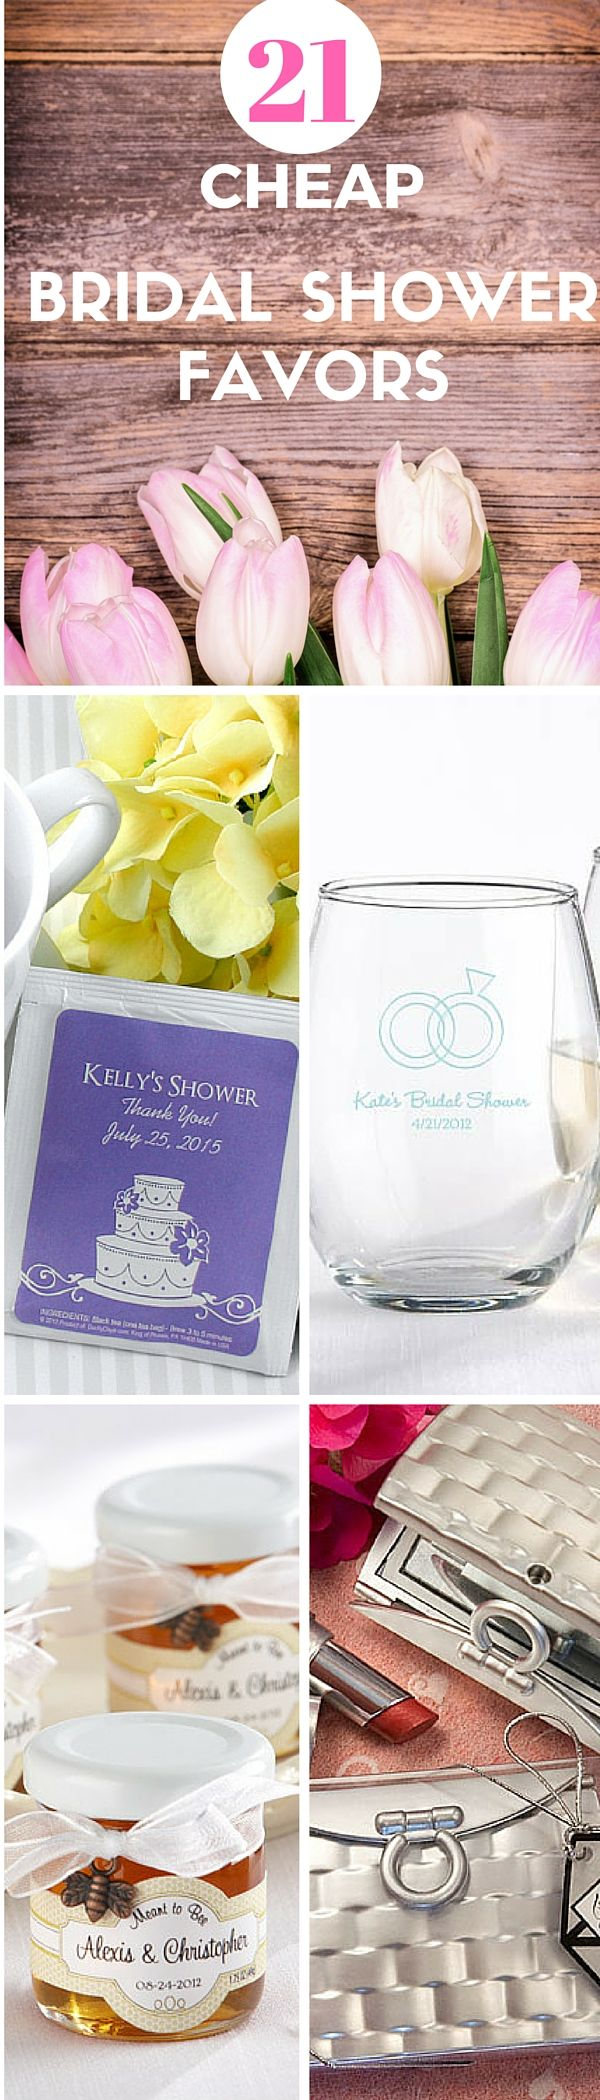 Best 25+ Cheap bridal shower favors ideas on Pinterest ...